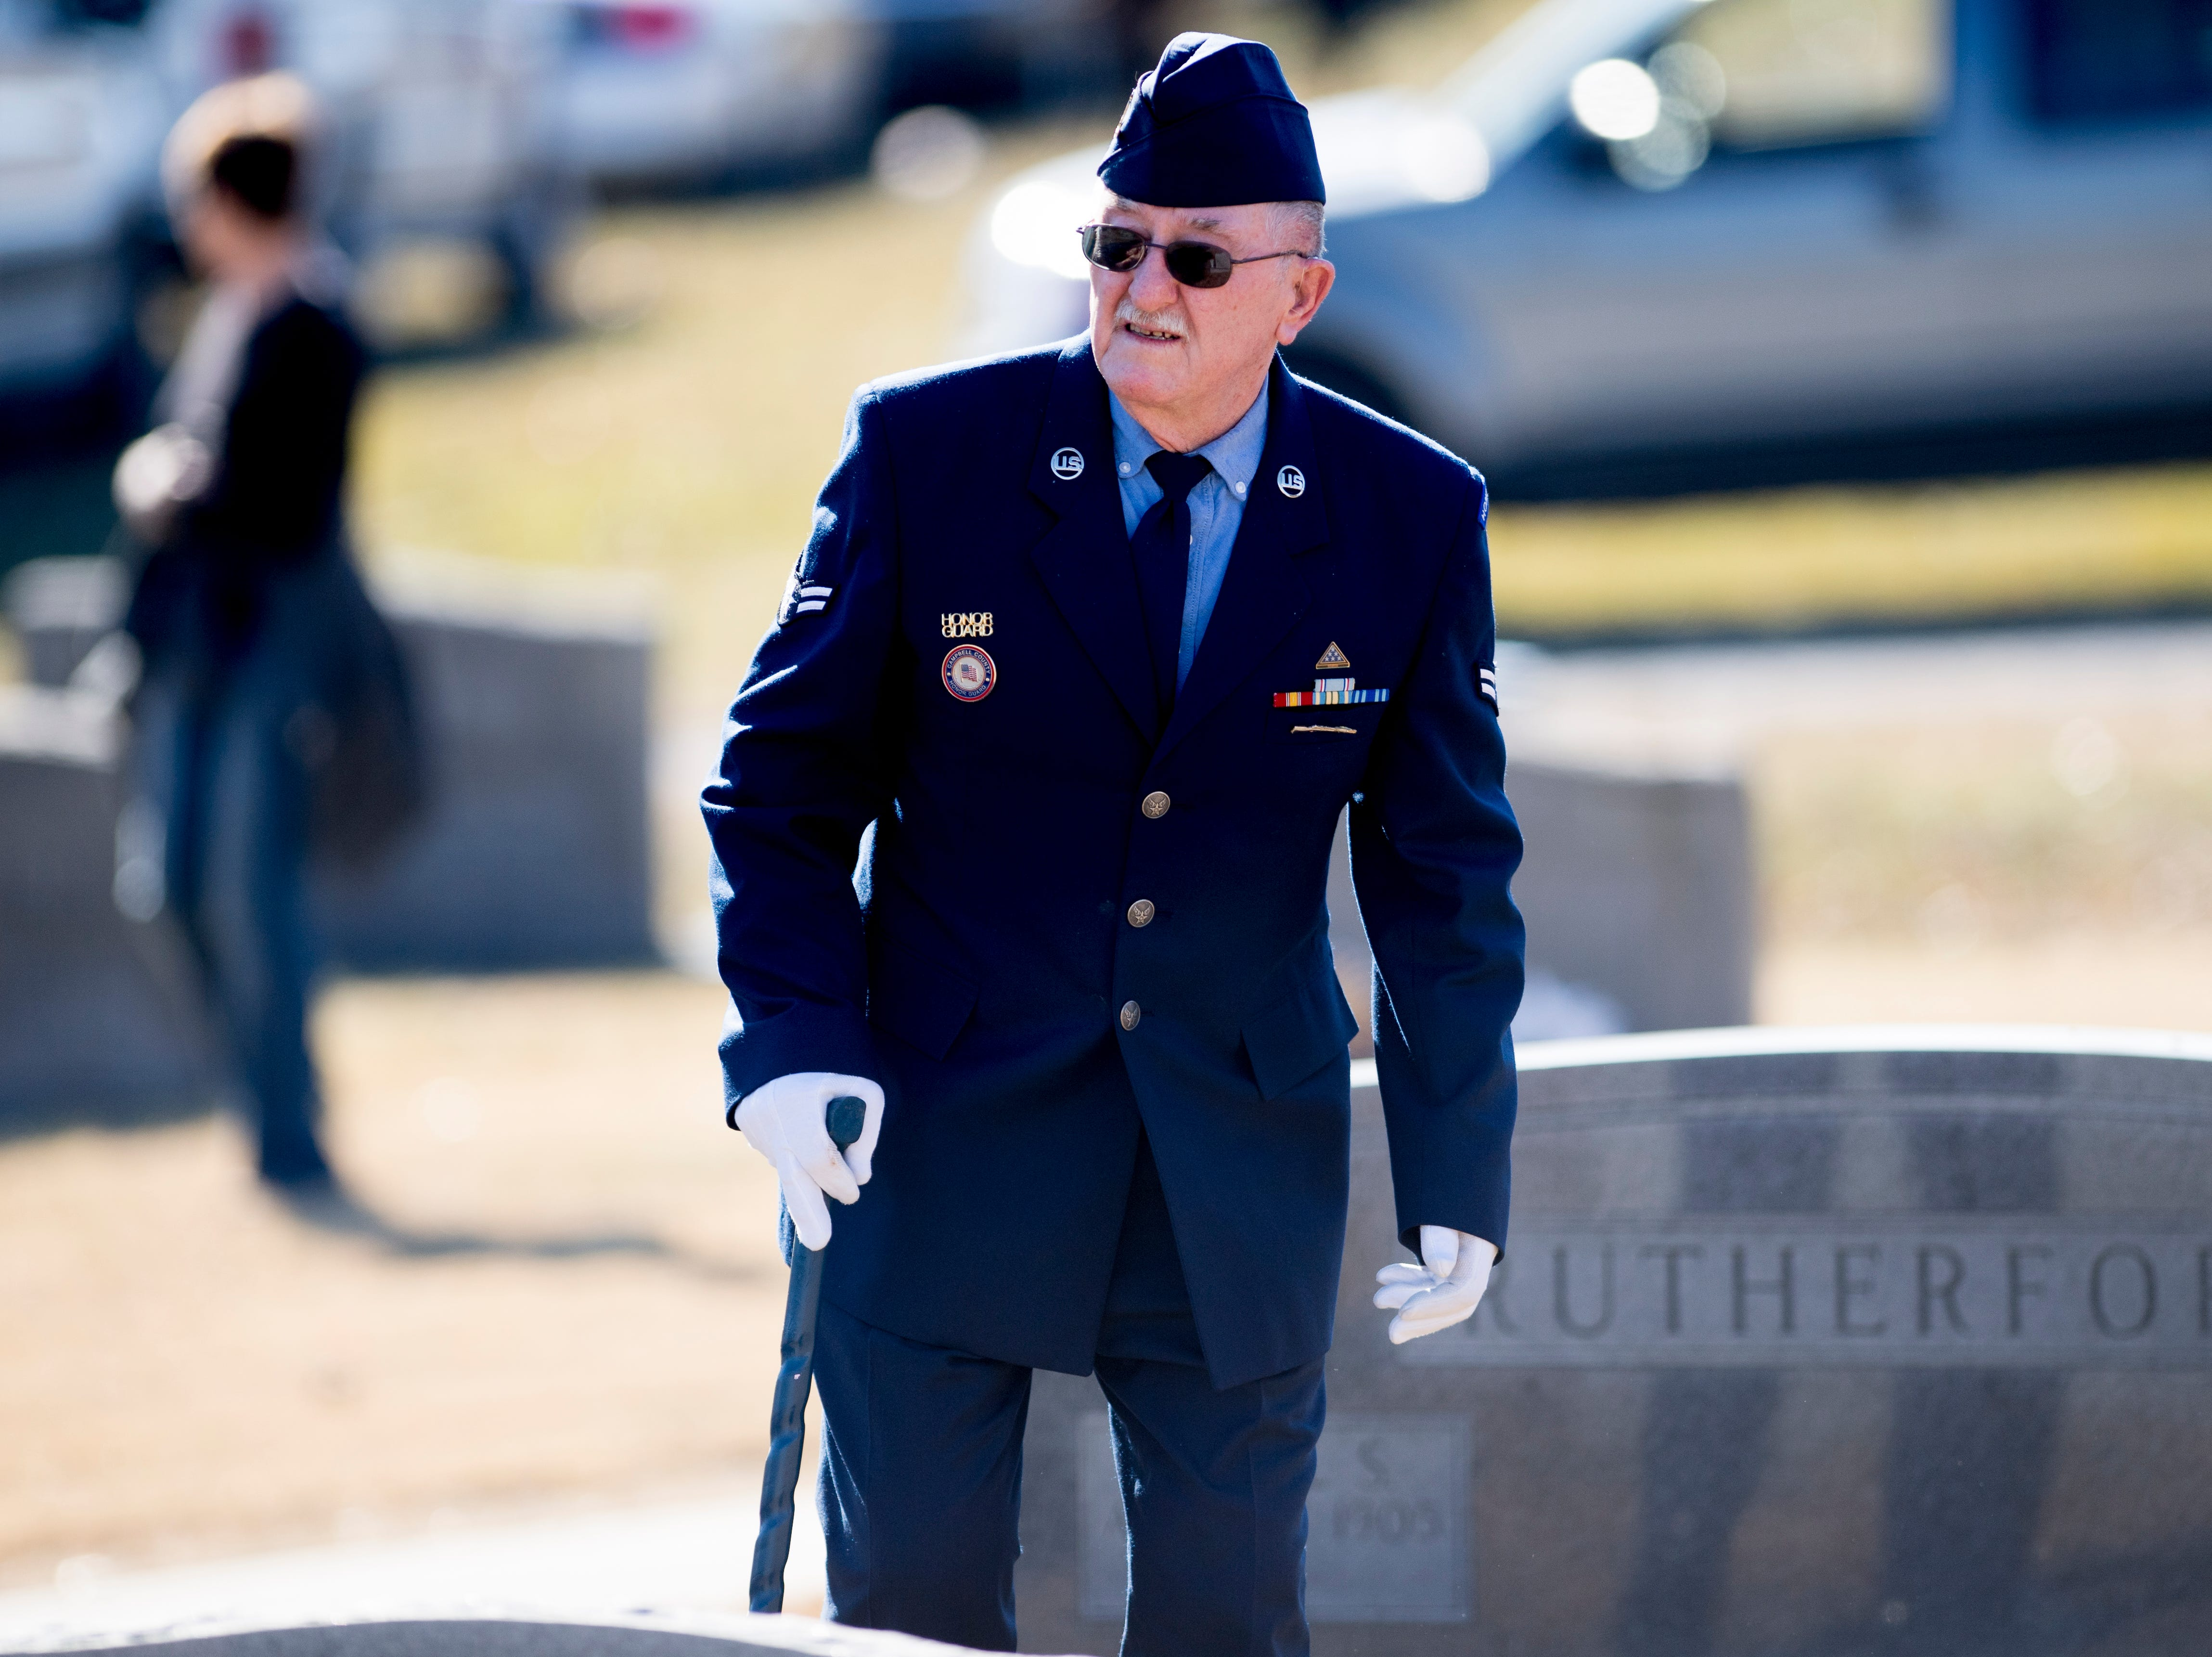 A member of the Campbell County Tennessee Honor Guard walks through the cemetery before a graveside service for Rosemary Mariner, the US Navy's first female fighter pilot, at New Loyston Cemetery in Maynardville, Tennessee on Saturday, February 2, 2019. Mariner died January 24th of cancer.